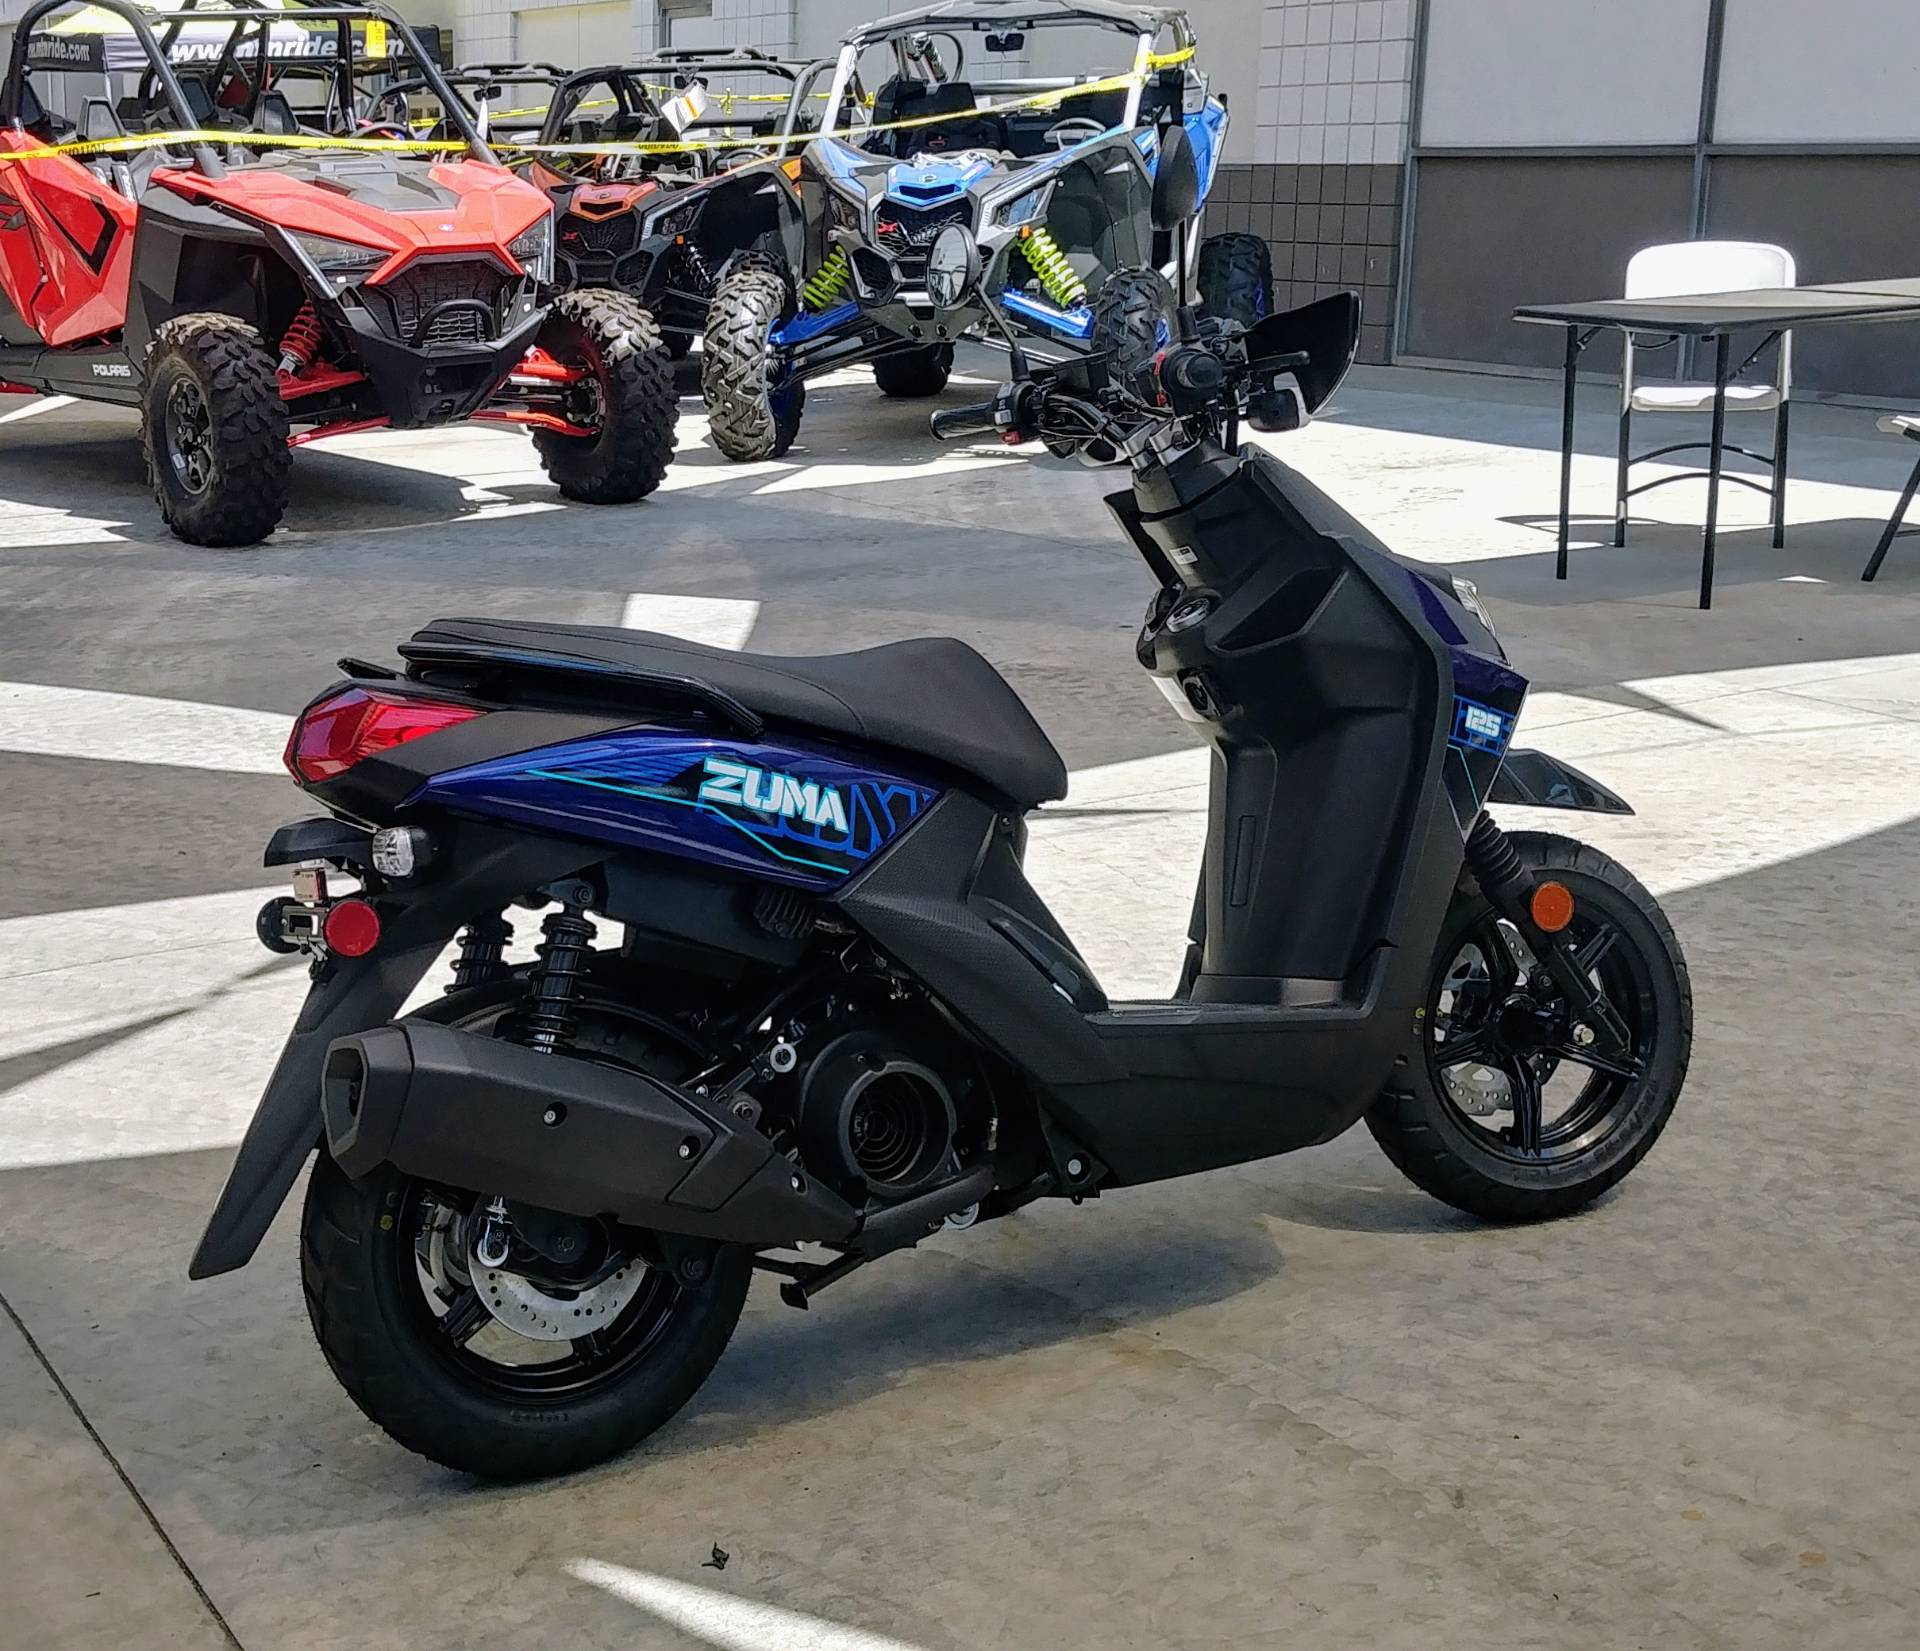 2020 Yamaha Zuma 125 in Ontario, California - Photo 5